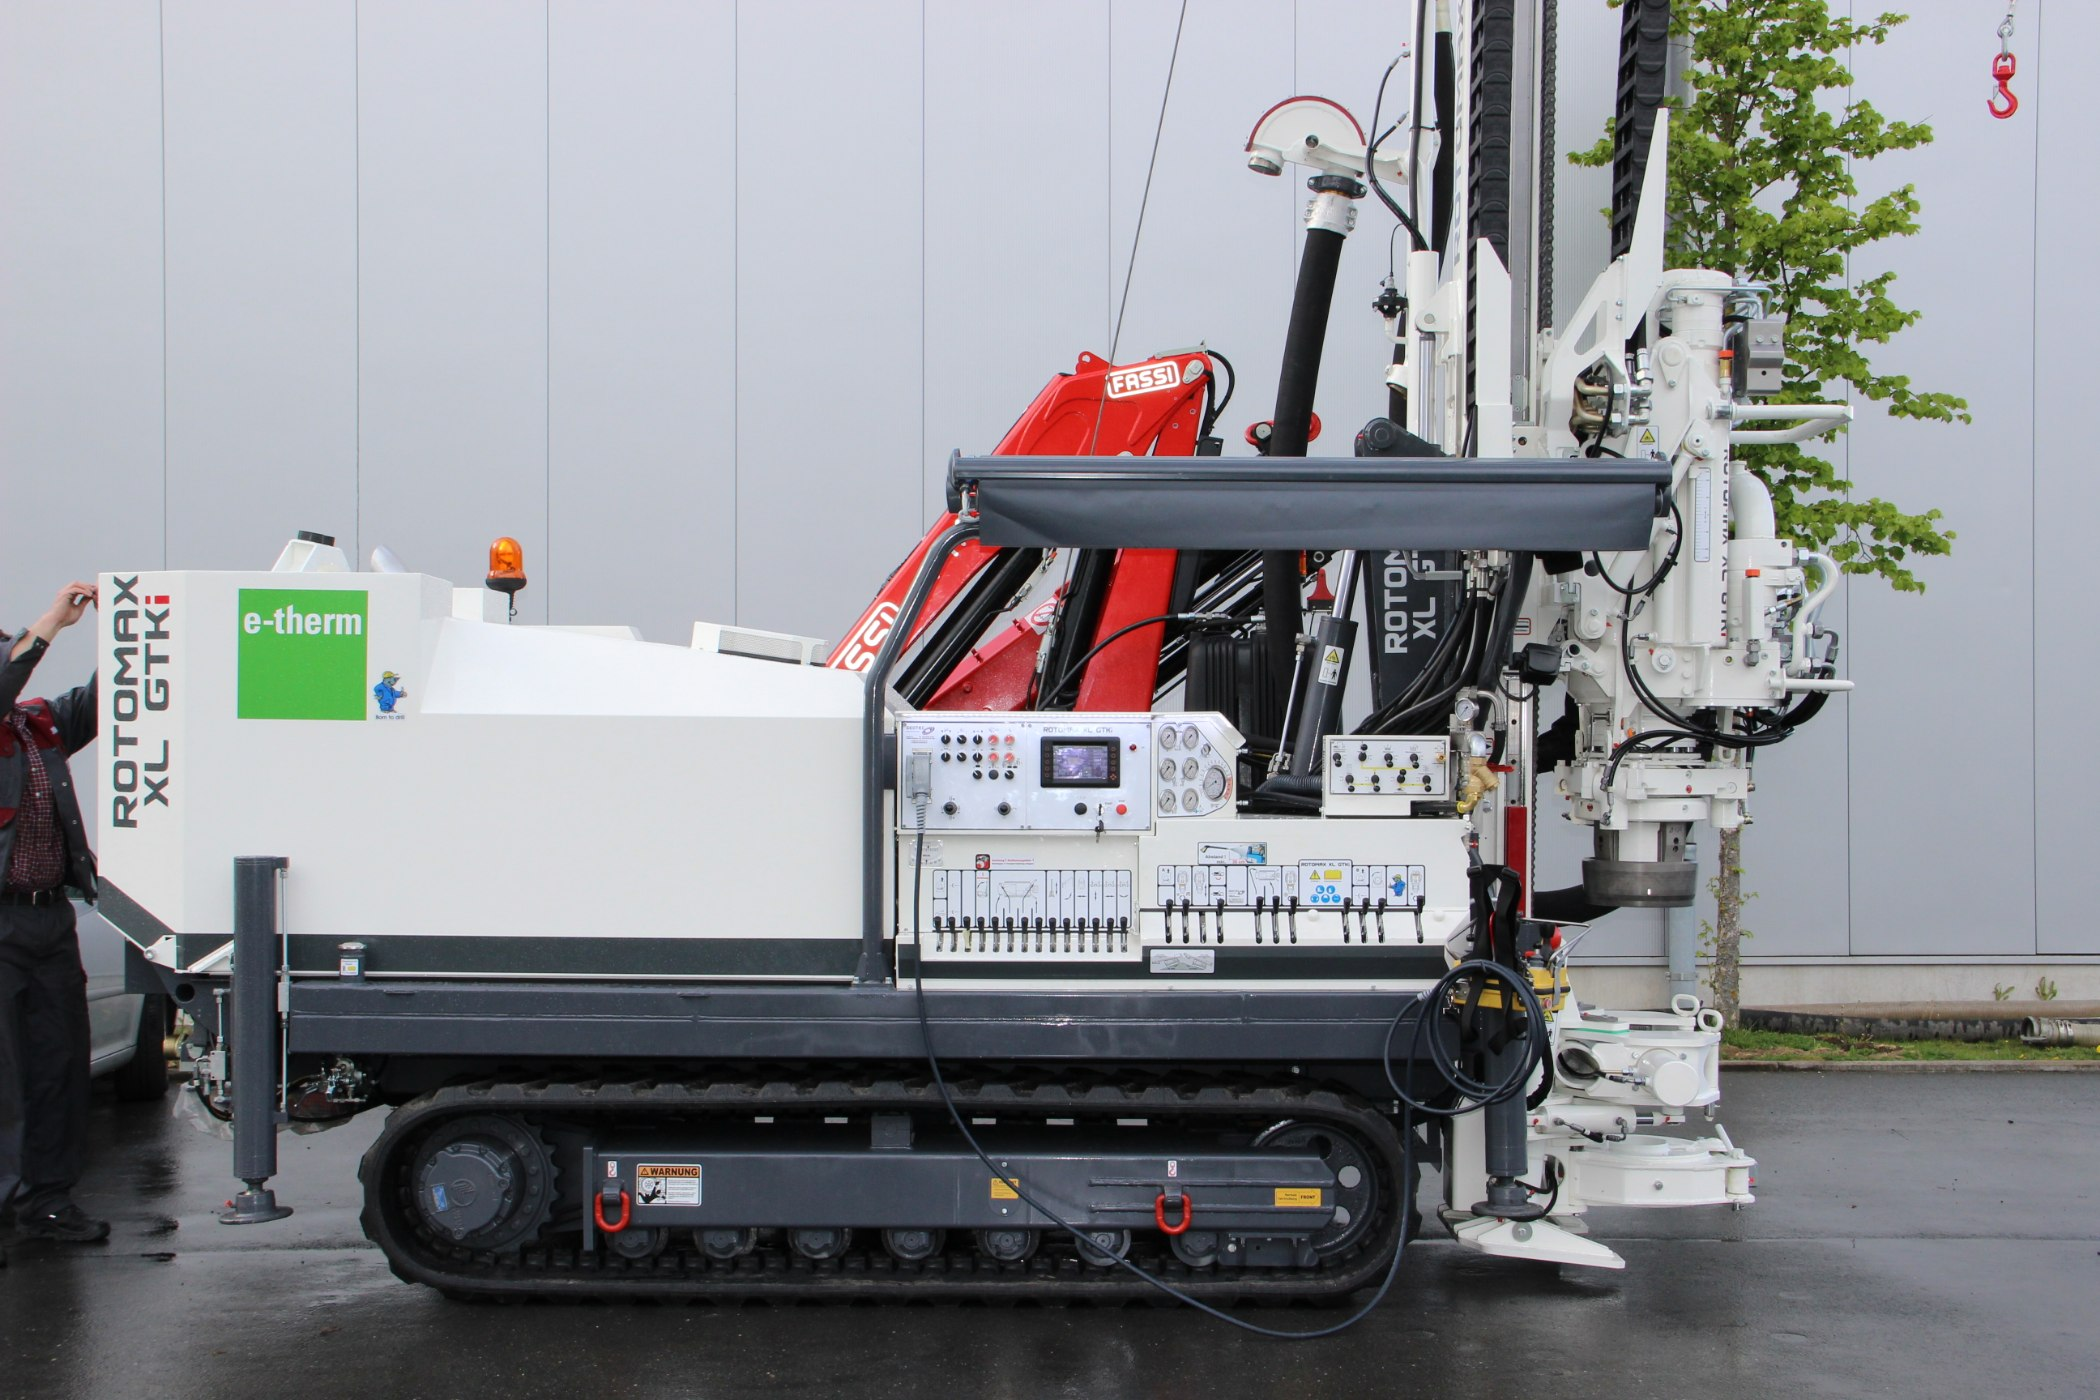 Geotec_Bohrtechnik_Drilling_Geothermiebohrung_Hammerbohrungen_Geothermal-drilling-application_Hammer-drilling_Rotomax_XL_GTKi_01-IMG_4806